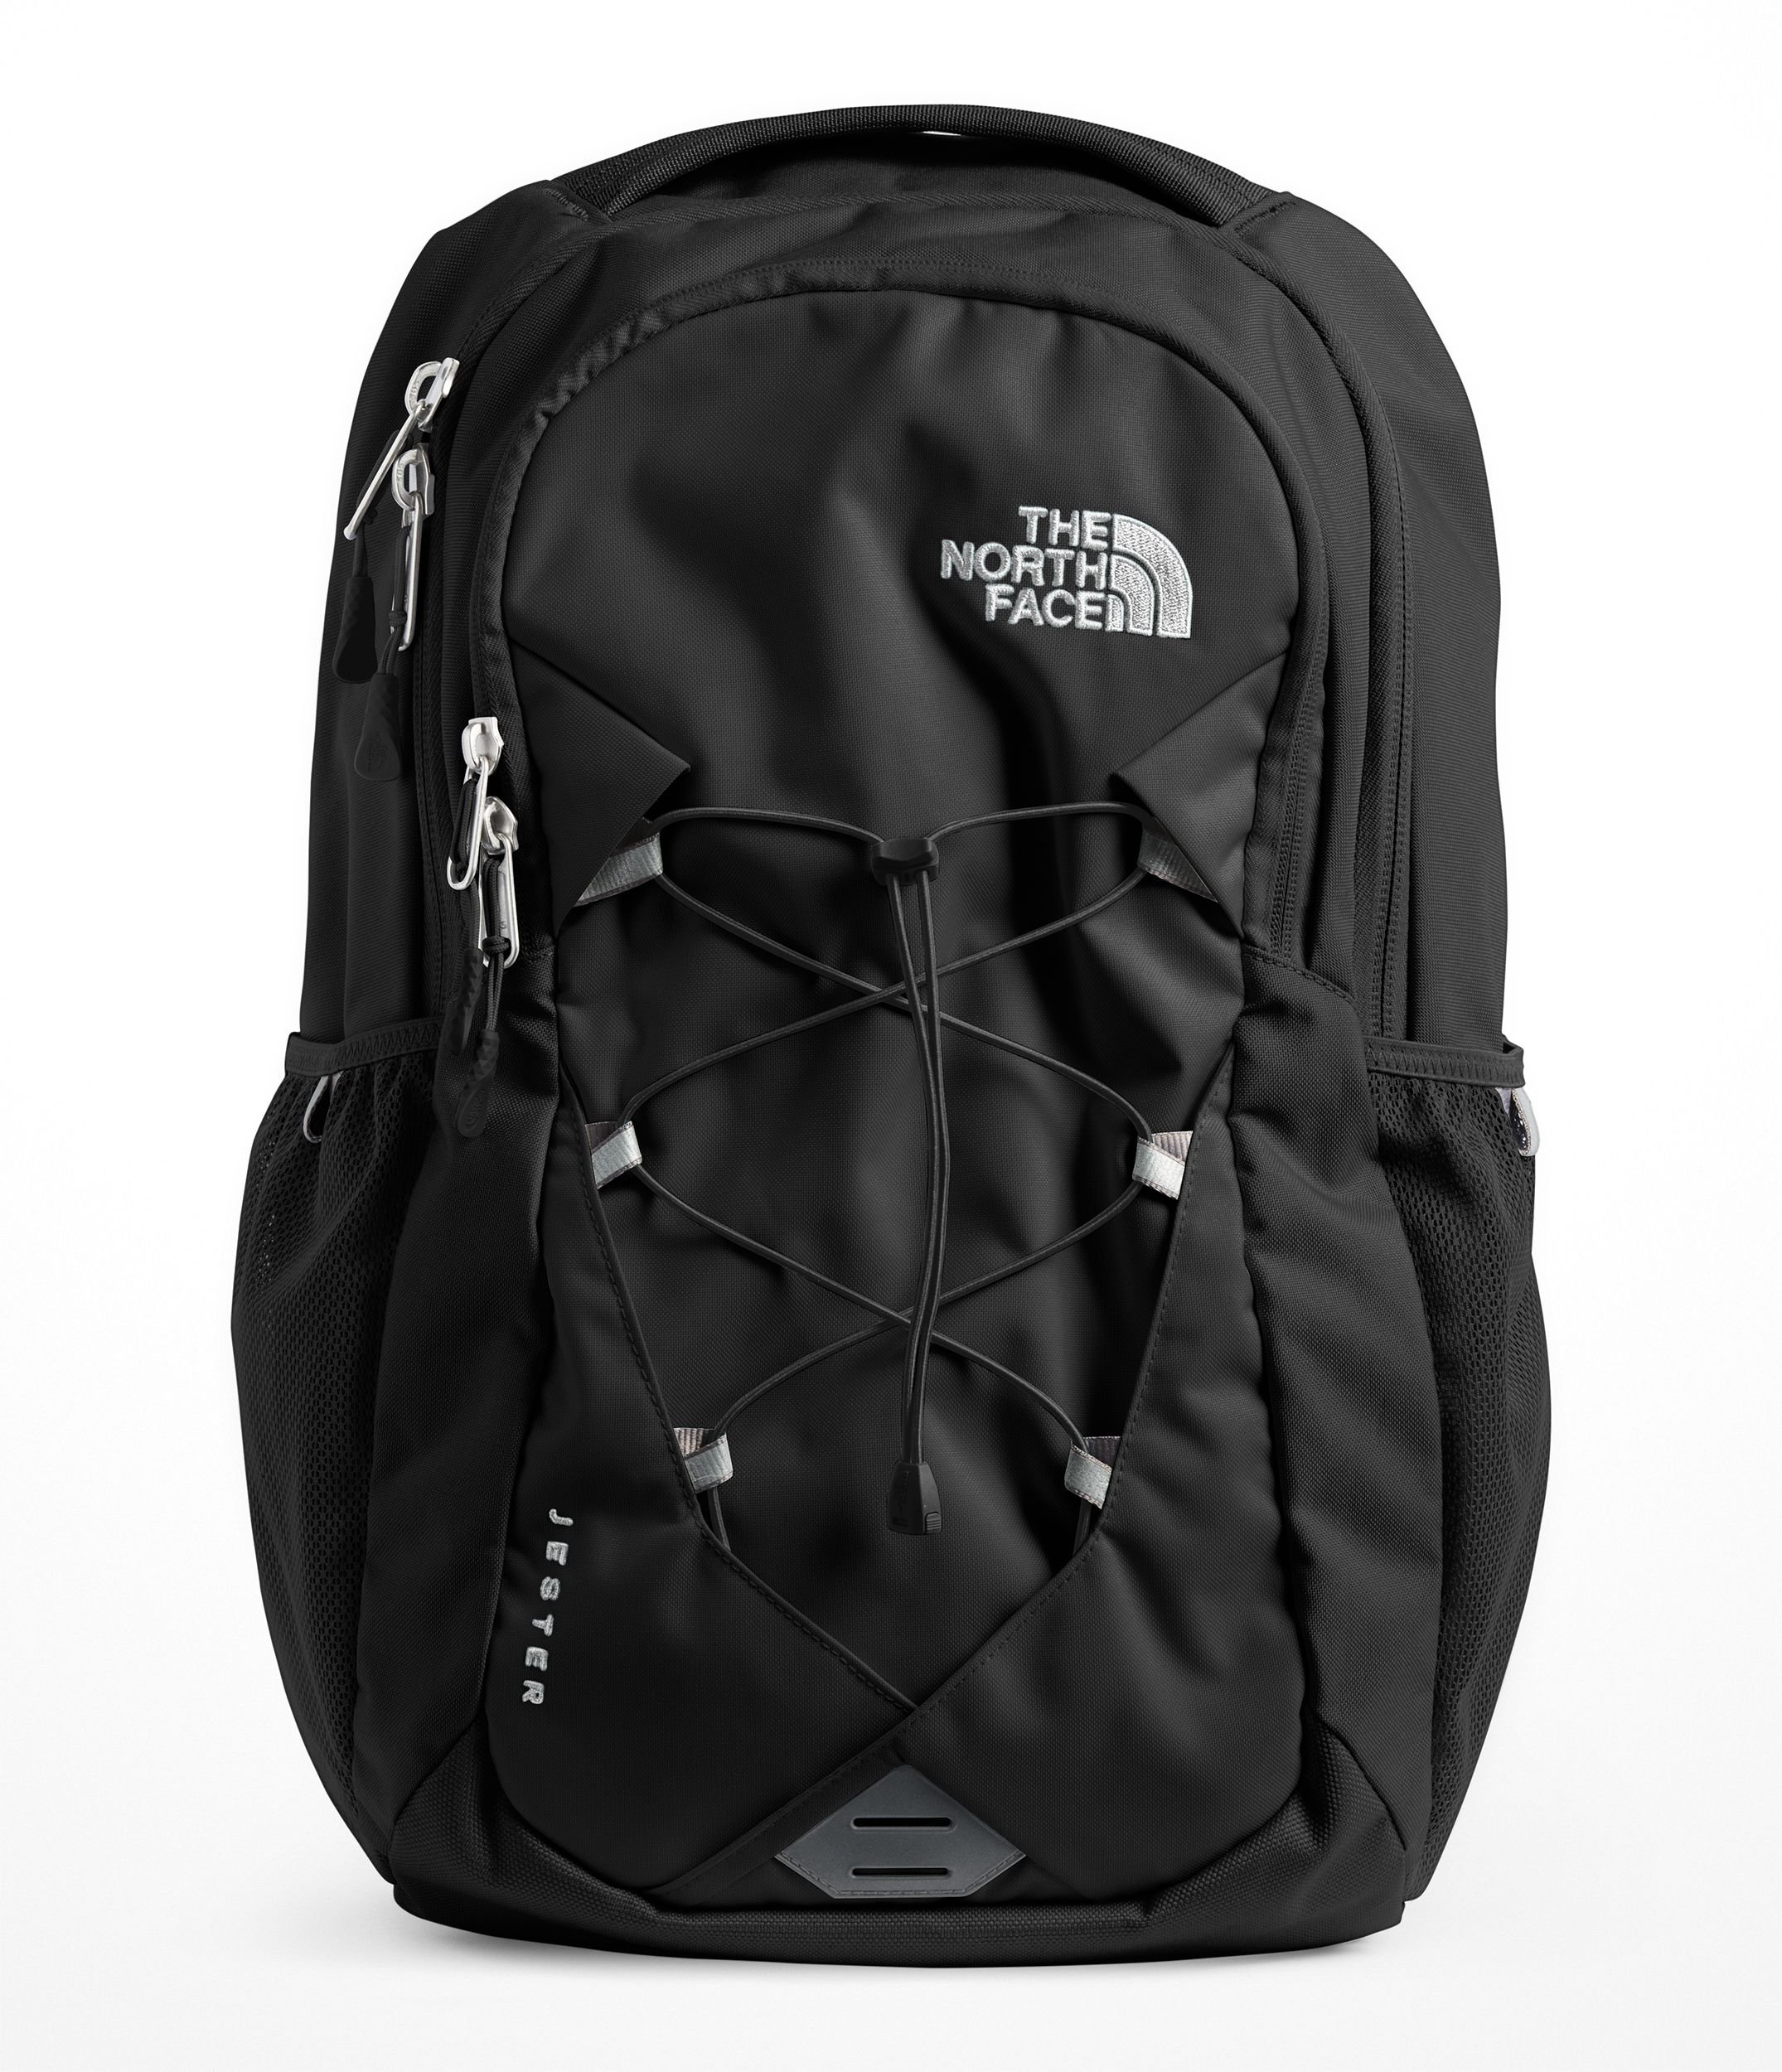 The North Face Women's Jester Backpack Tnf Black One Size by The North Face